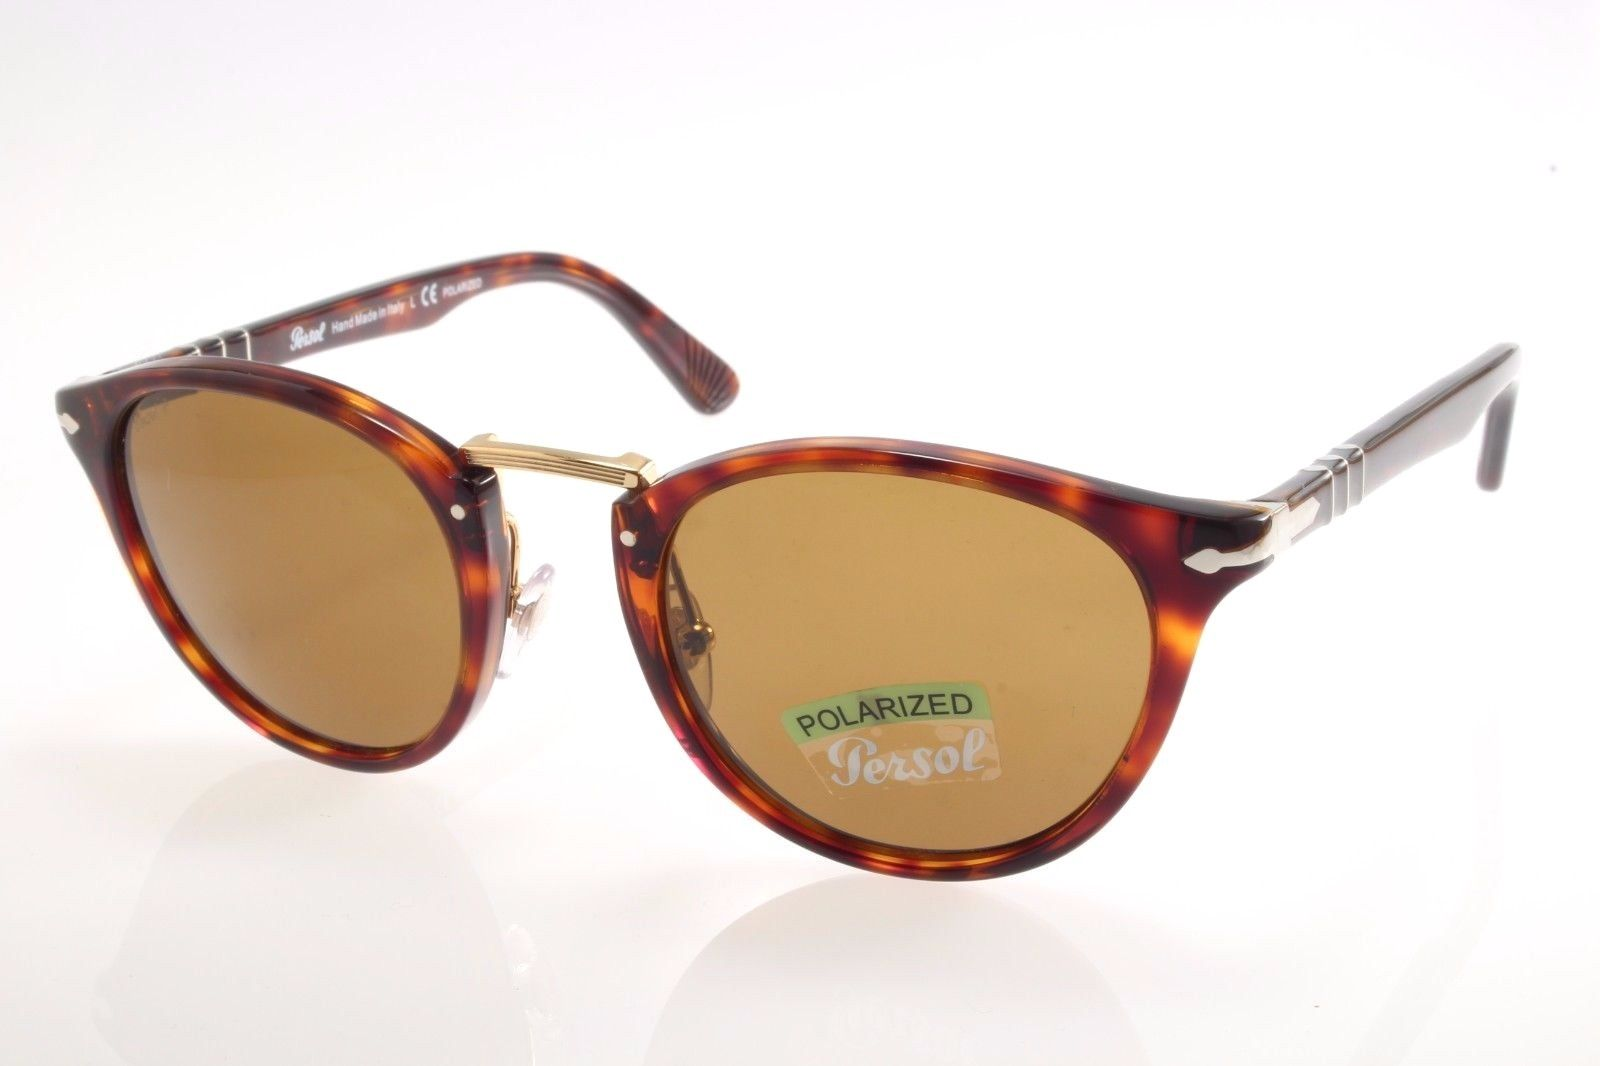 21772c1035 New authentic sunglasses Persol Typewriter 3108S 24 57 49 Havana ...